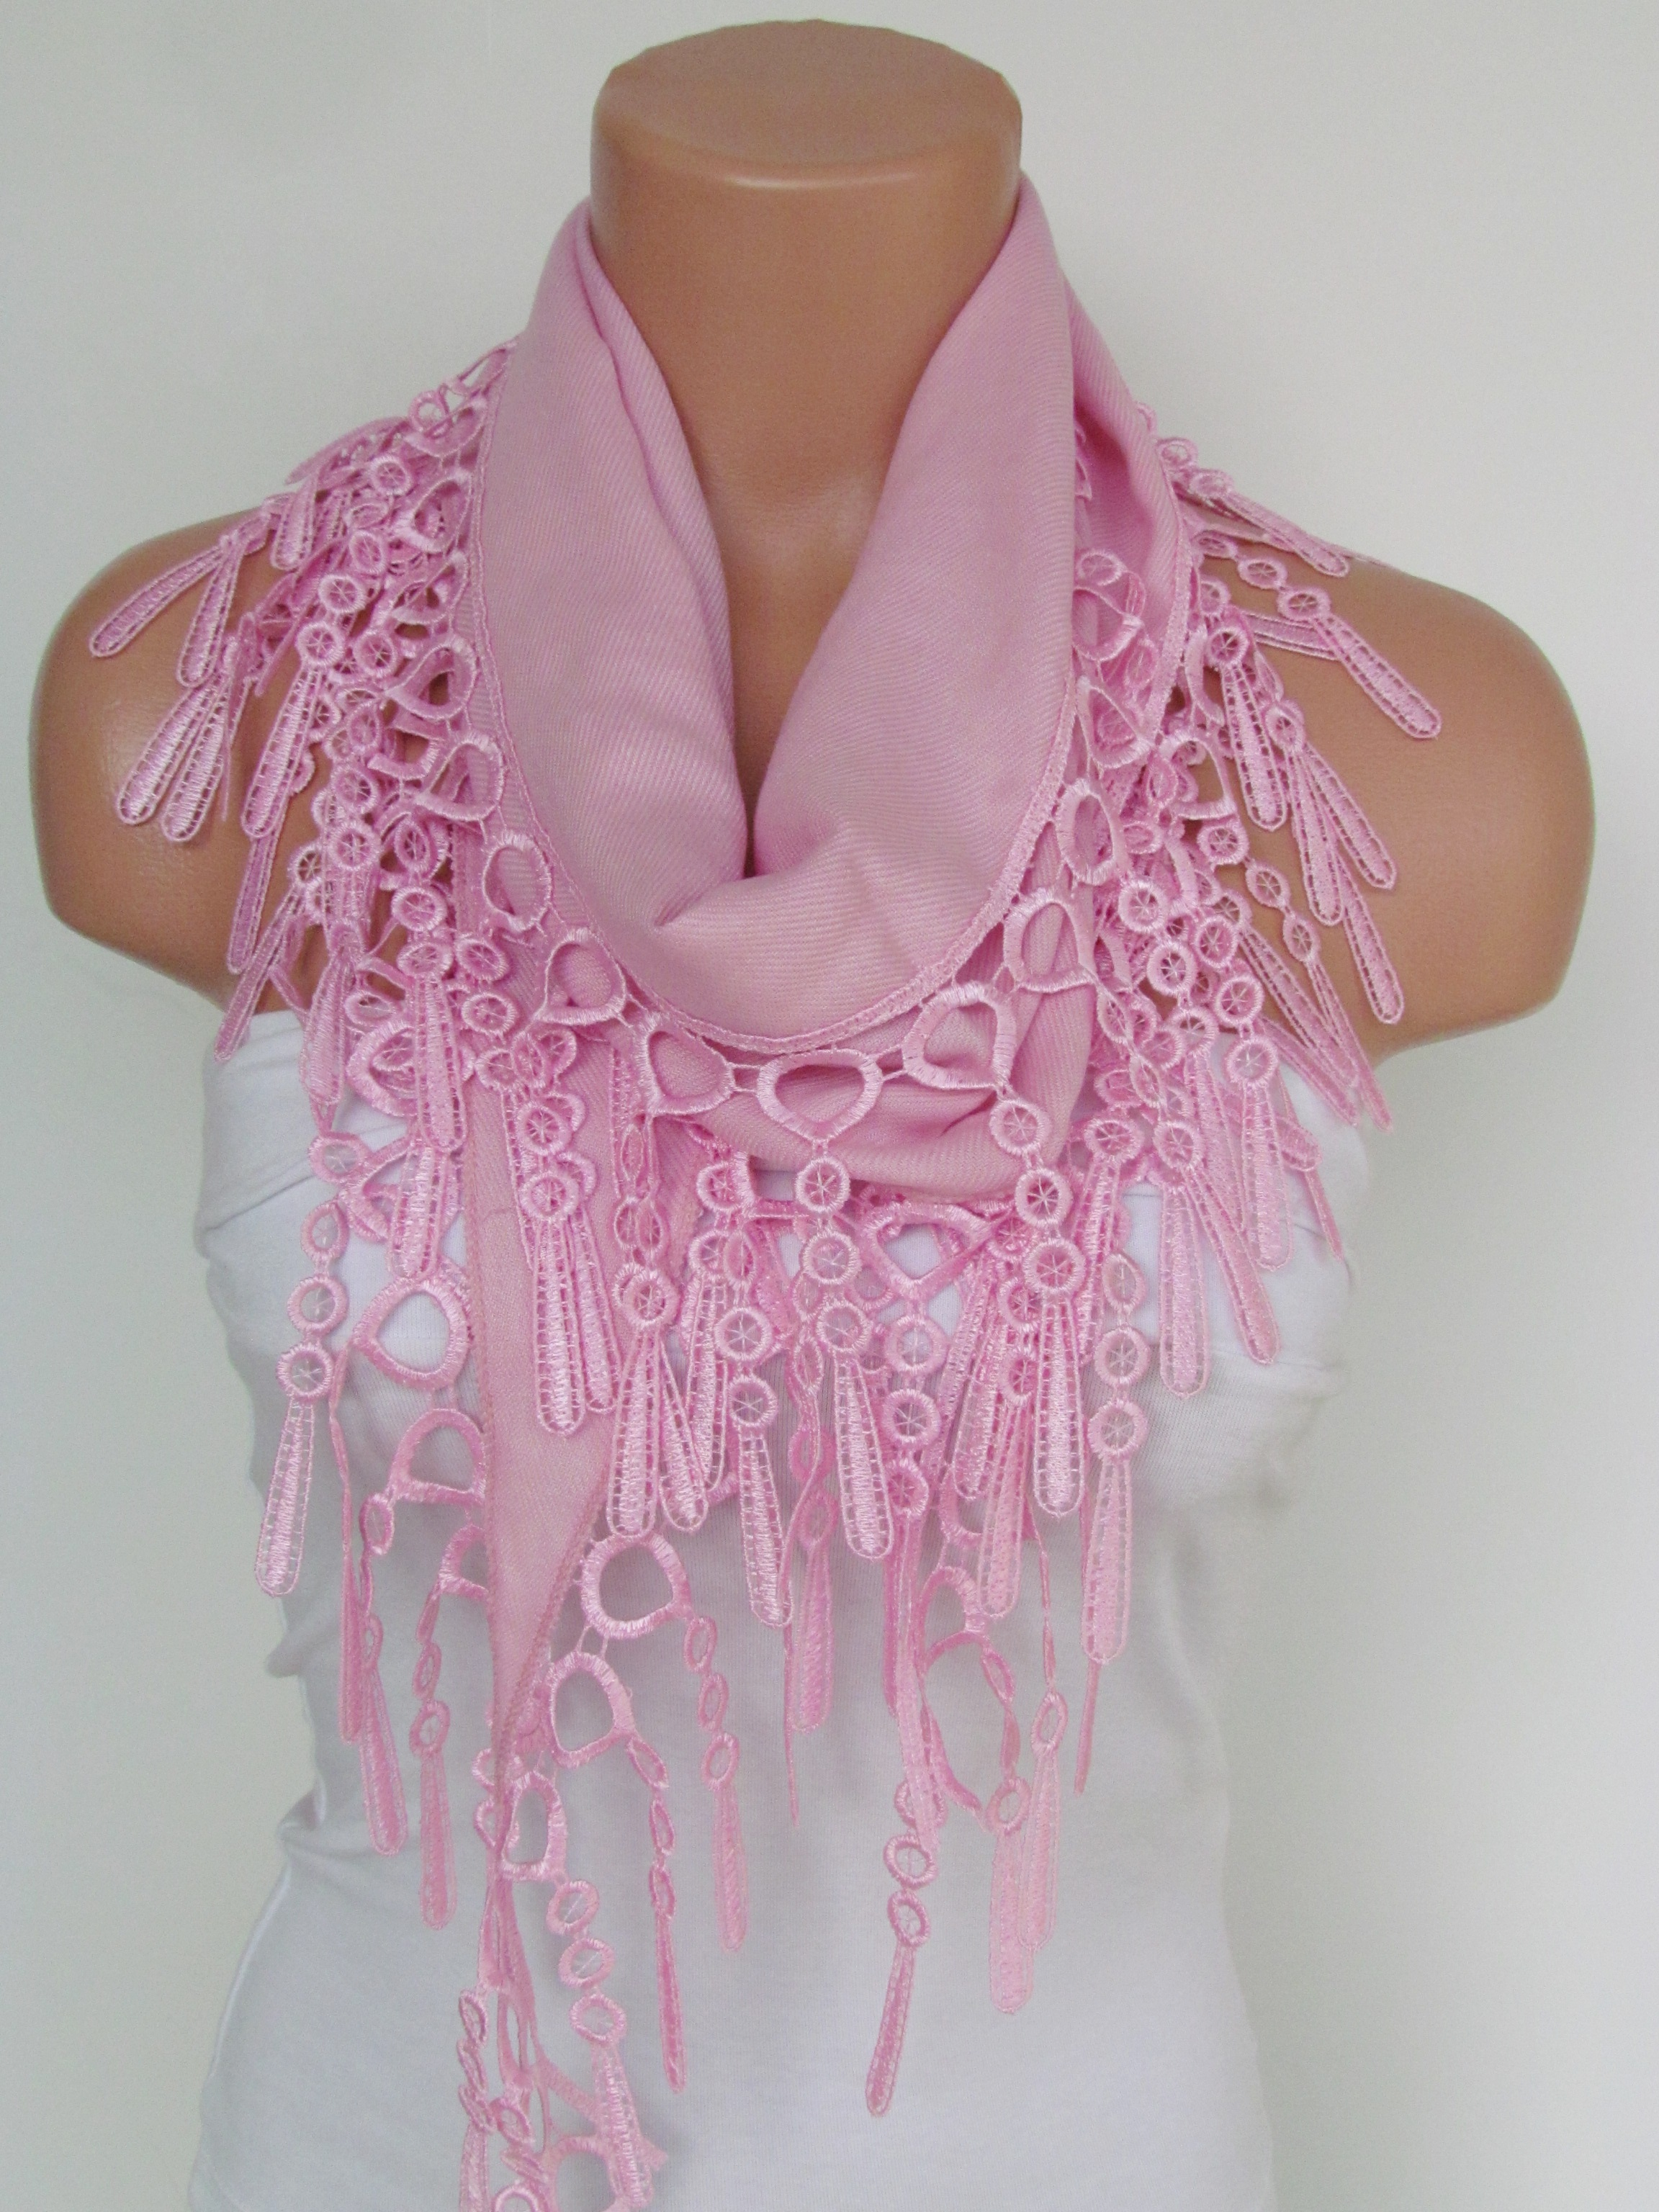 0ab866c96d121 Pink Pashmina Scarf With Fringe-Long Scarf-Fall Fashion Scarf-Headband- Necklace- Infinity Scarf- New on Luulla